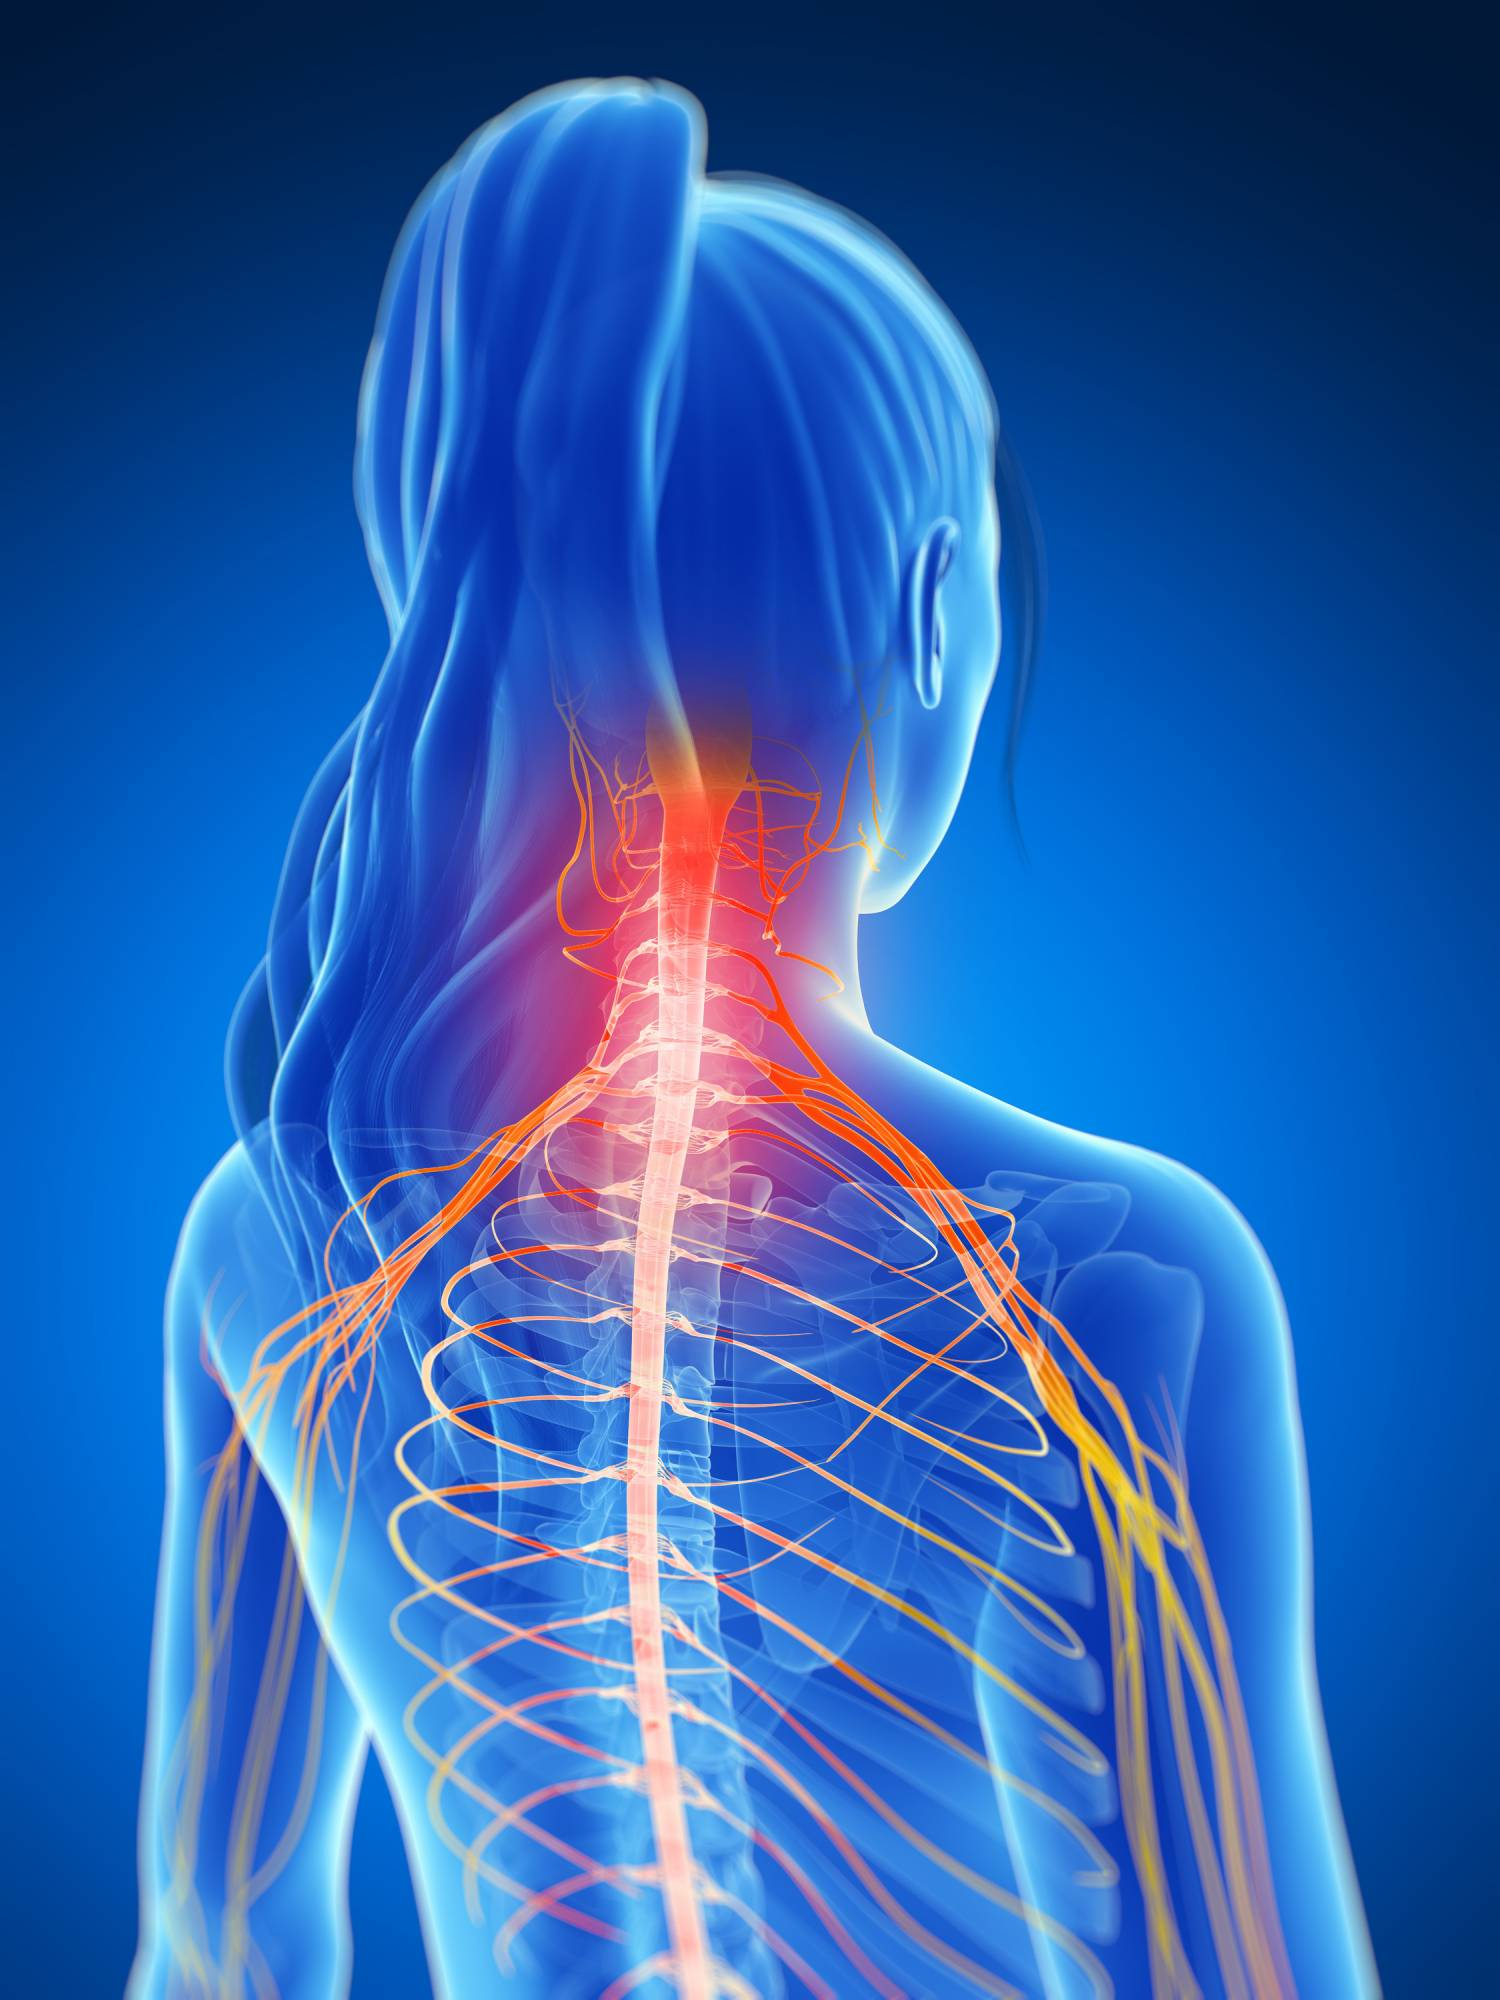 Treating Neck Pain Spreading To Your Shoulders And Arms